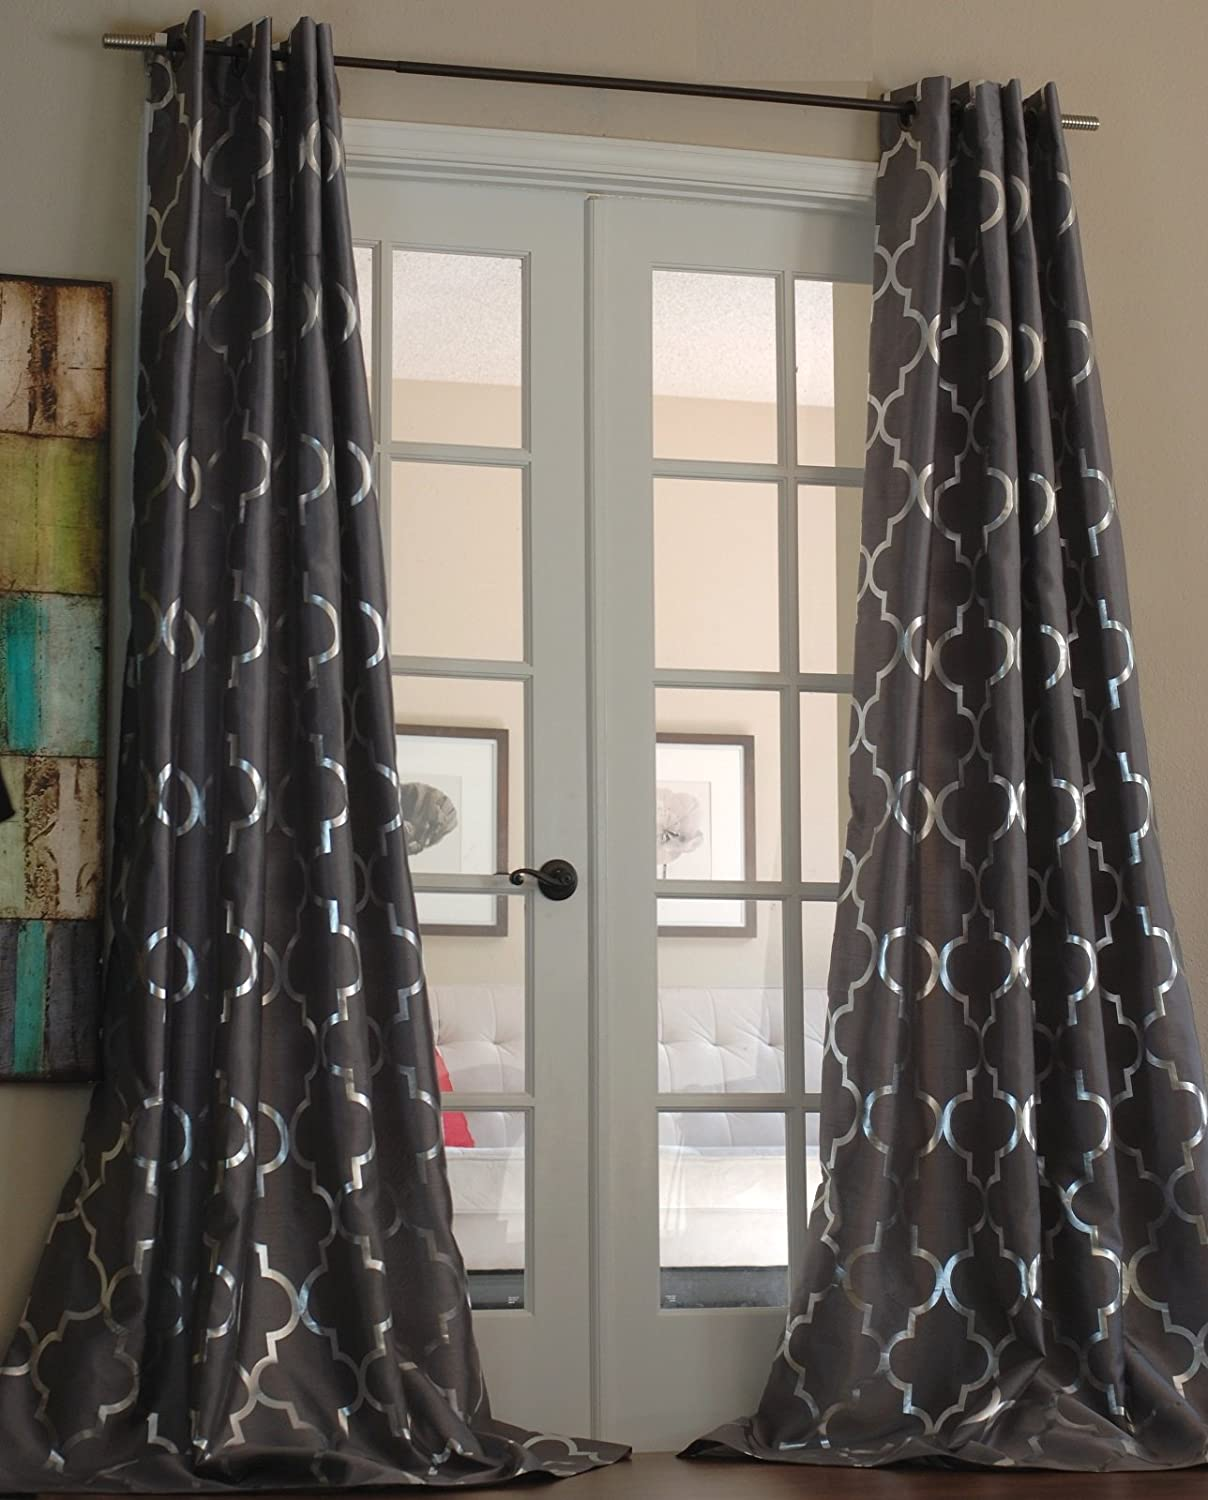 journey curtains my pattern of curtain image elegant trellis different and